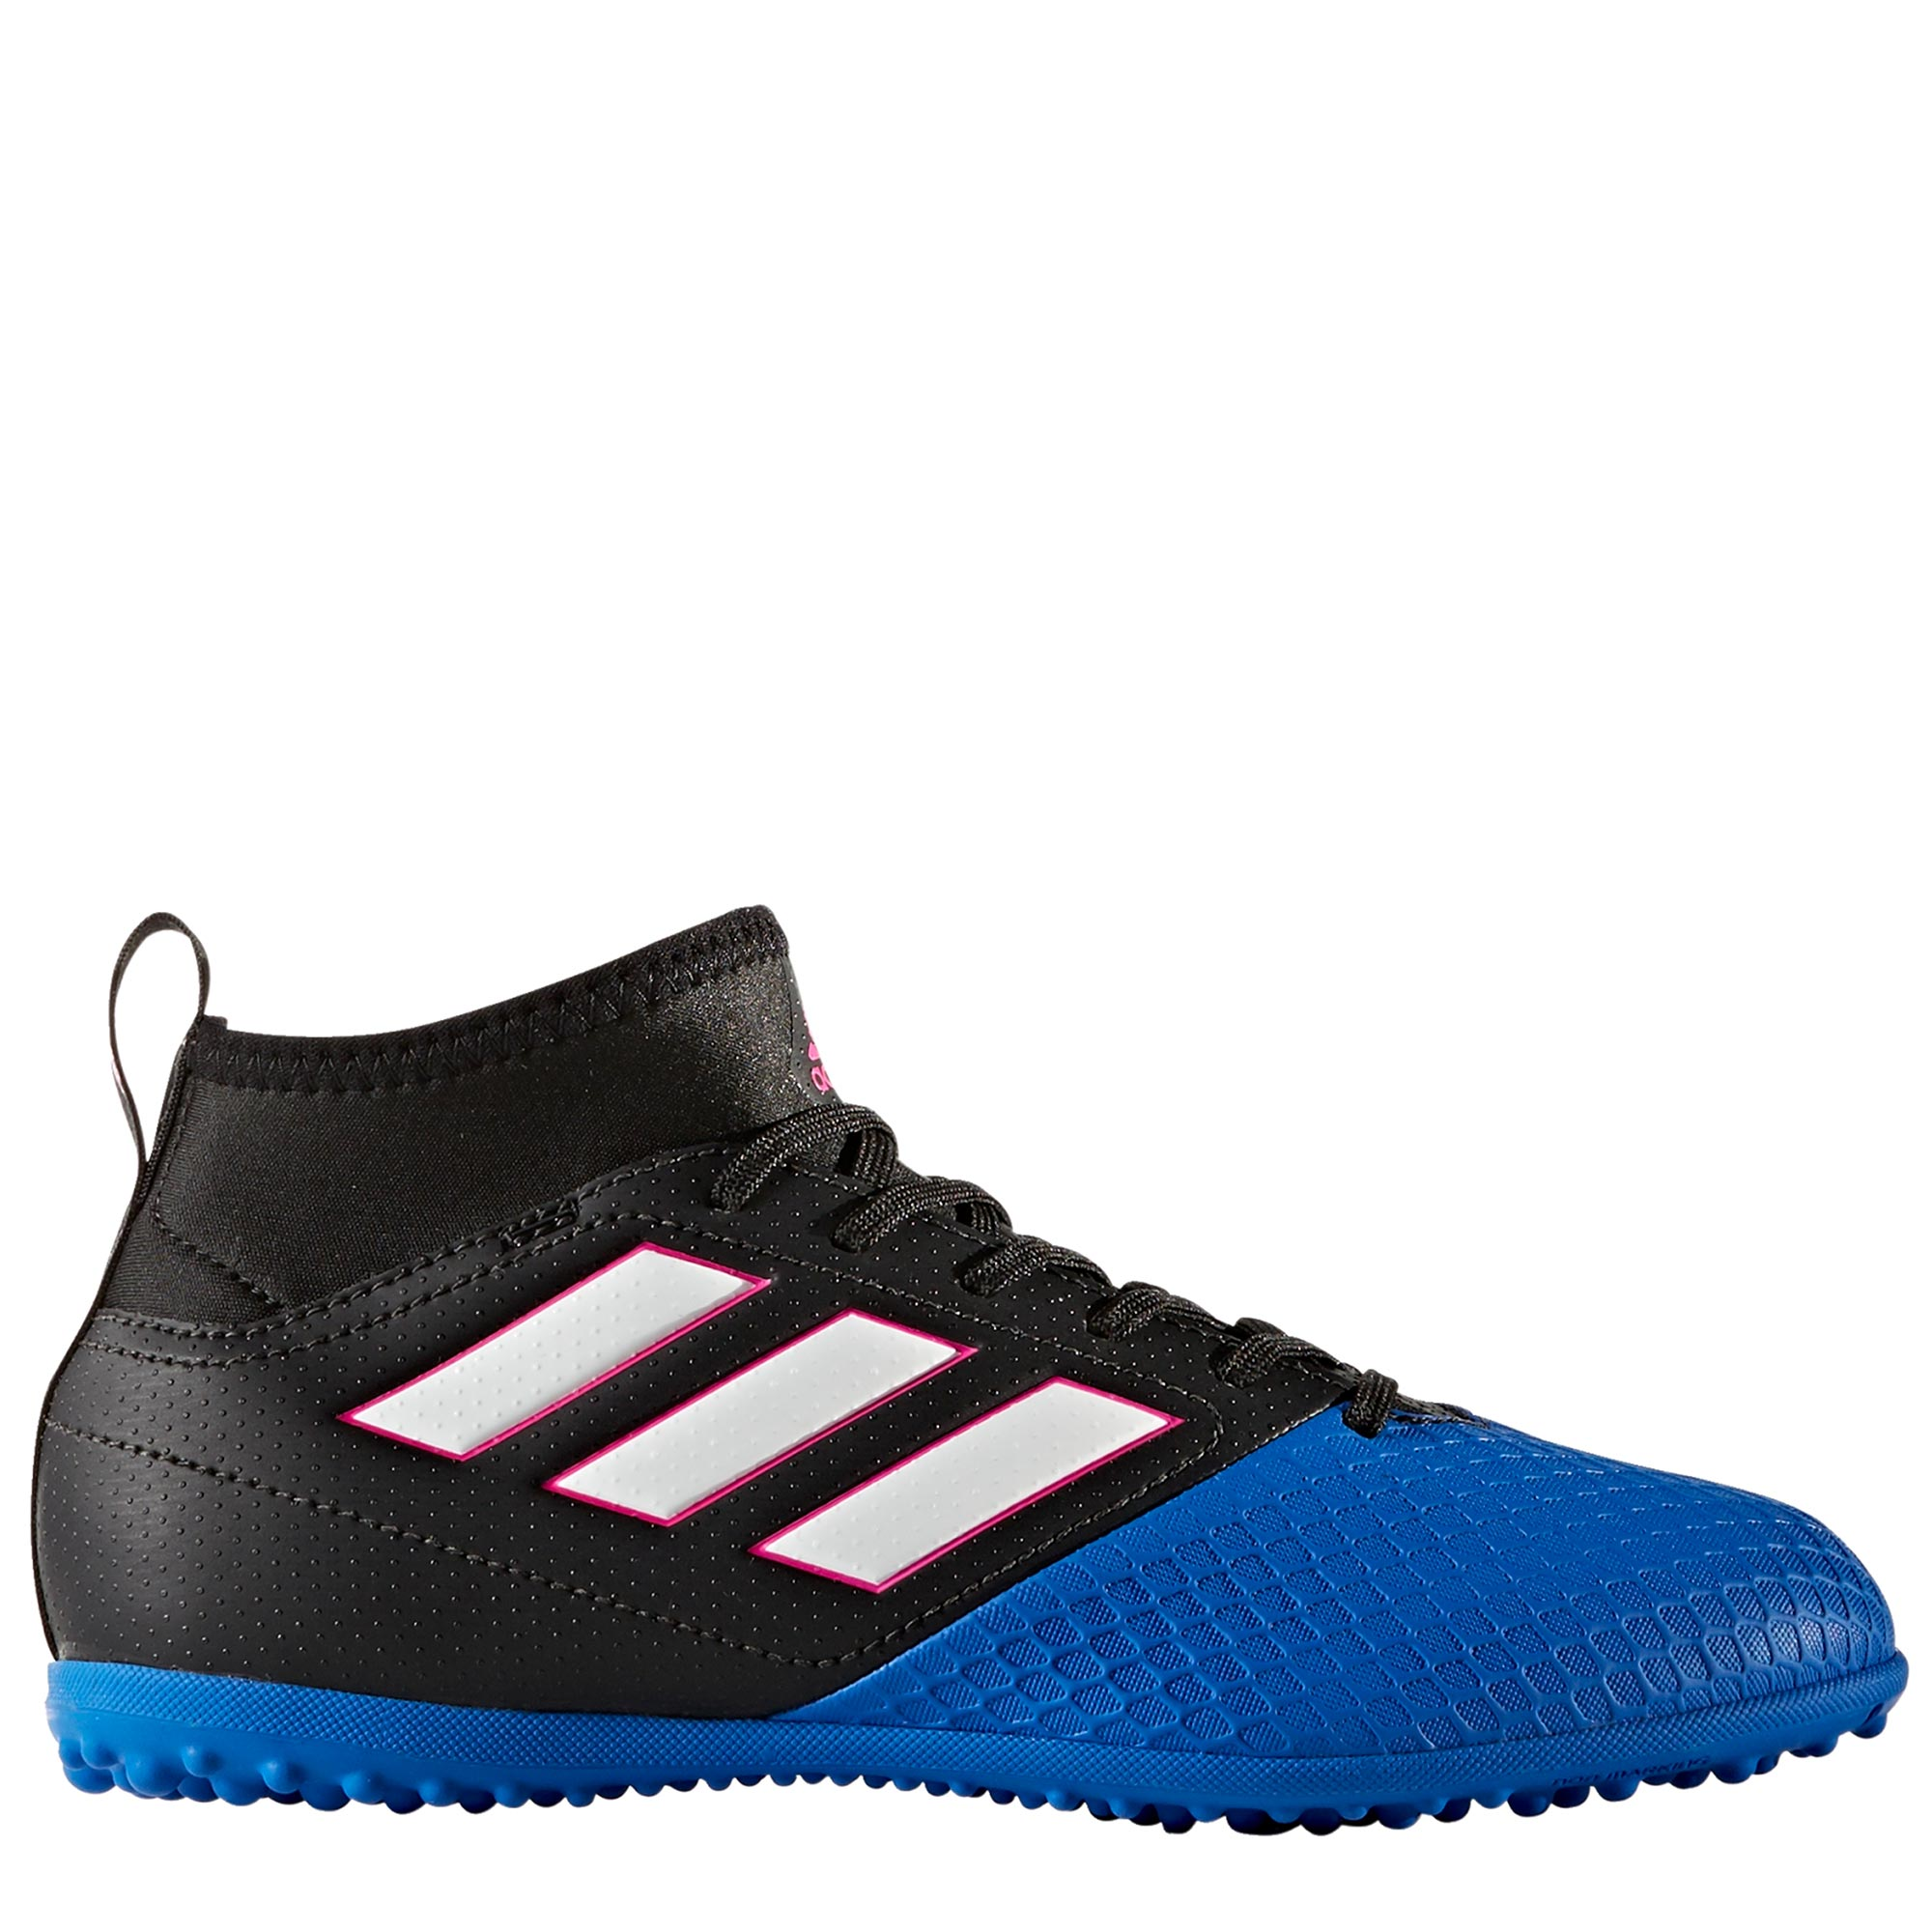 adidas Ace 17.3 Astroturf Trainers - Core Black/White/Blue - Kids